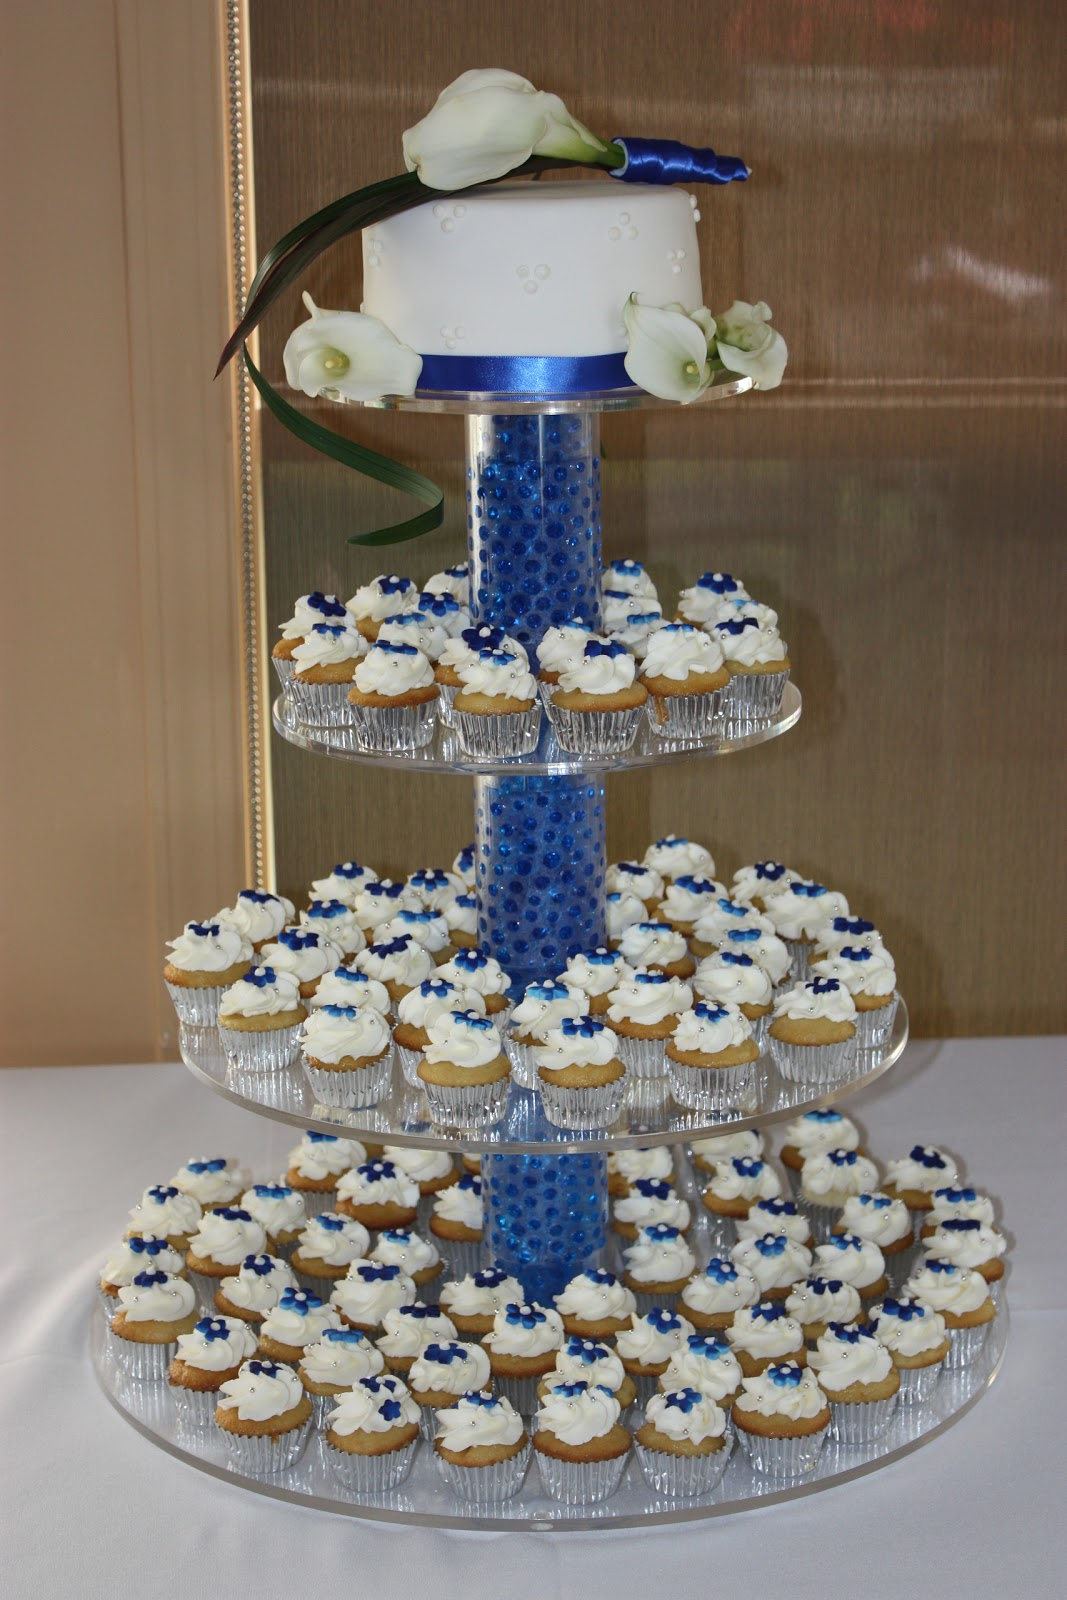 Sweet You Designer Cups & Cakes Sunset Ranch Wedding